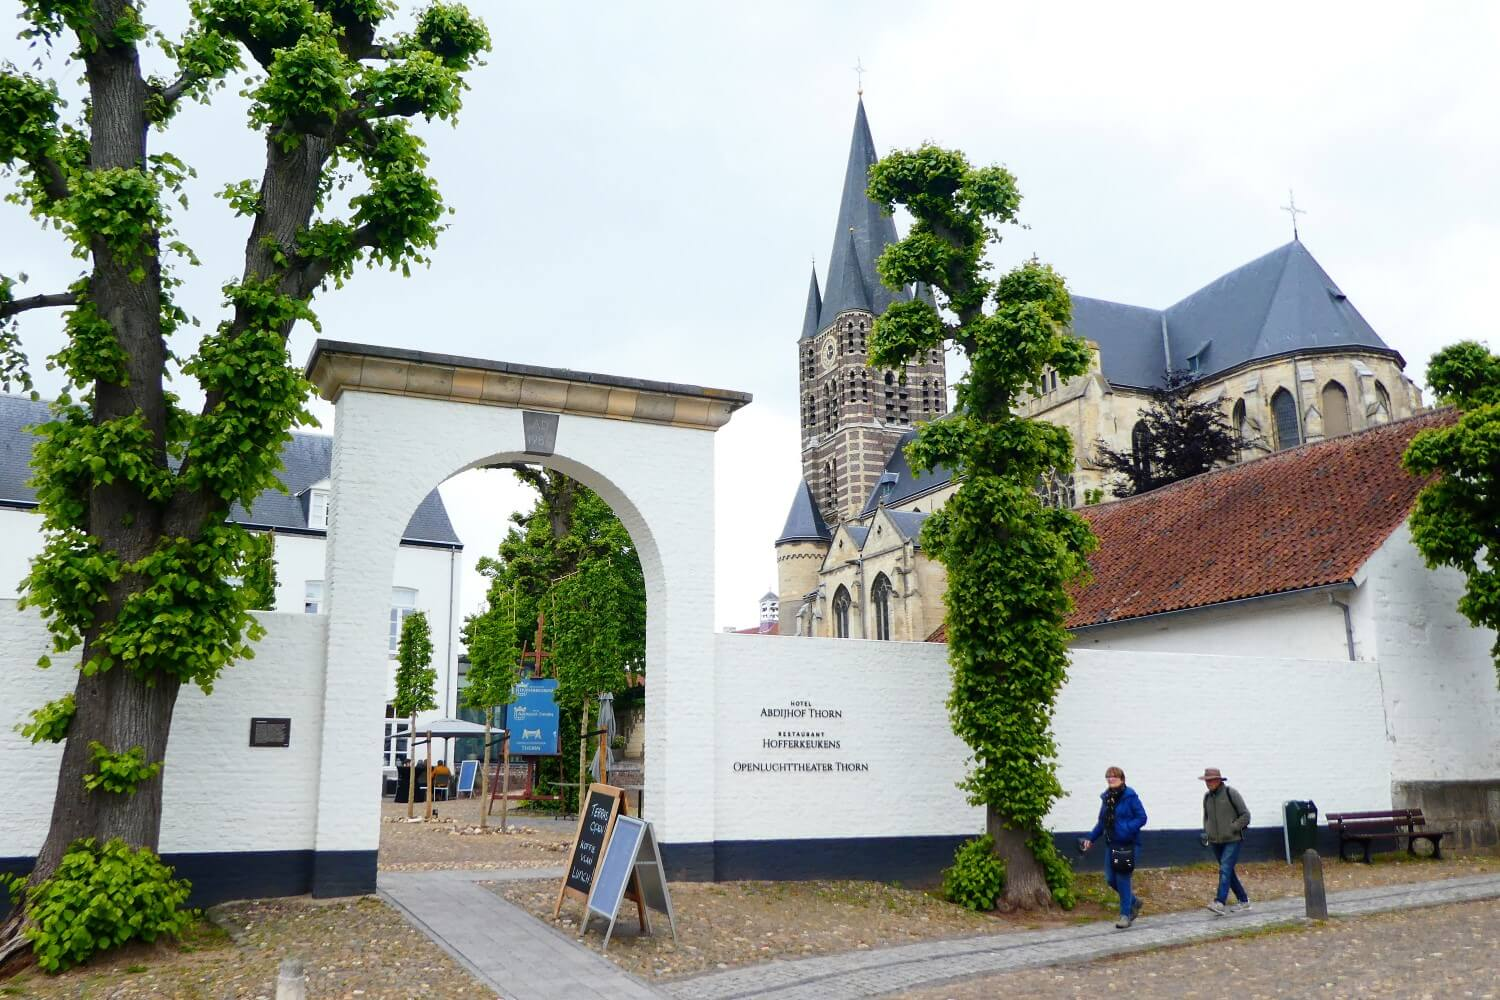 Restaurant and church in the white town of Thorn in Limburg